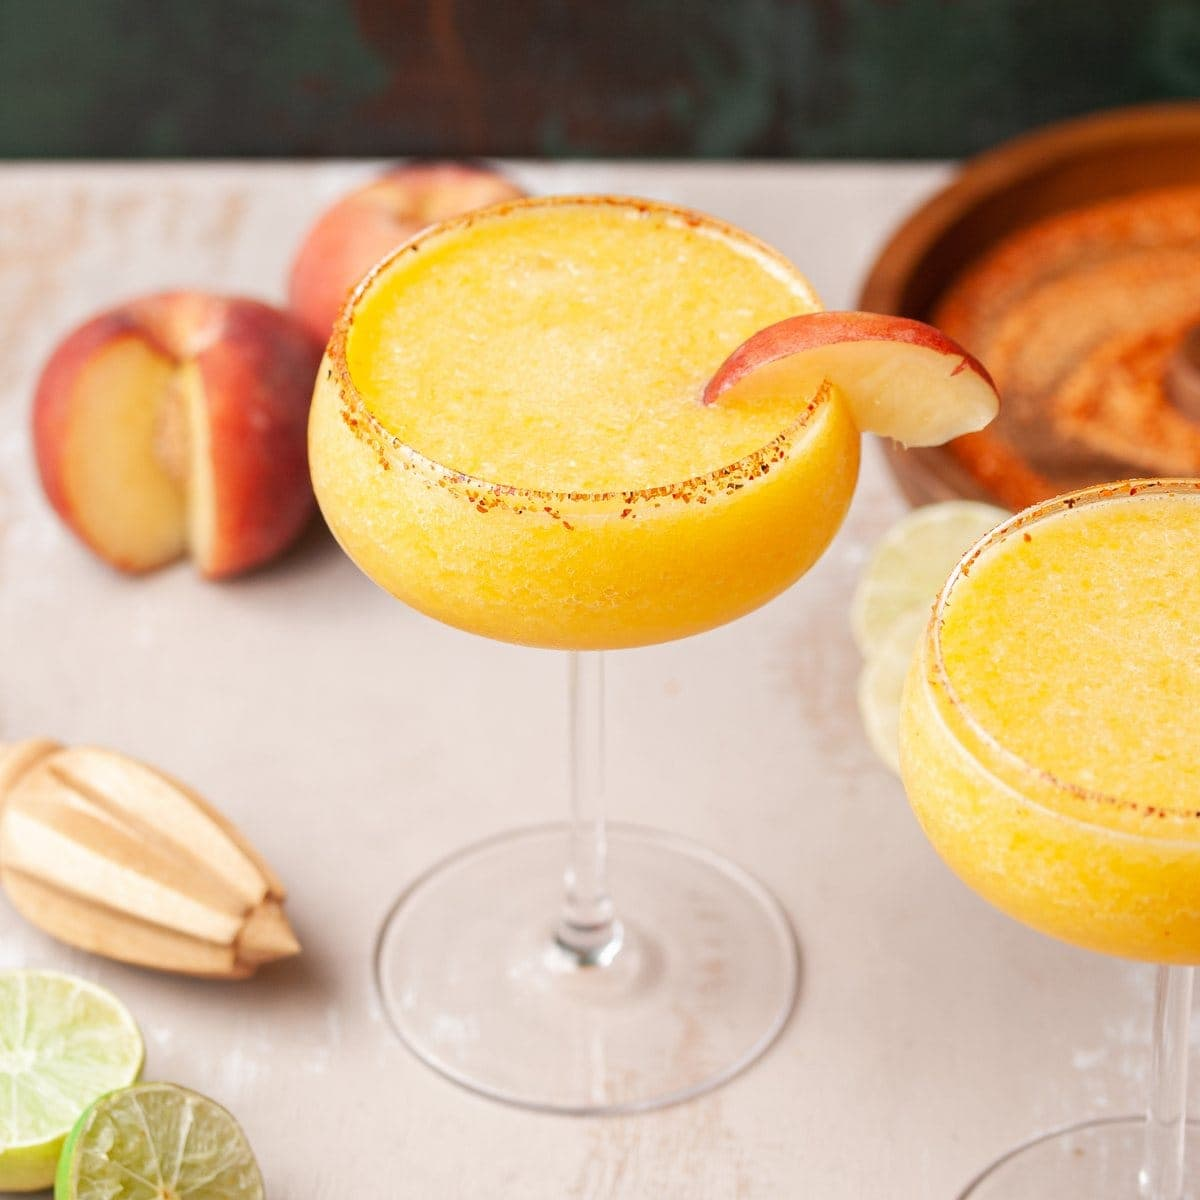 frozen cocktail garnished with a slice of peach